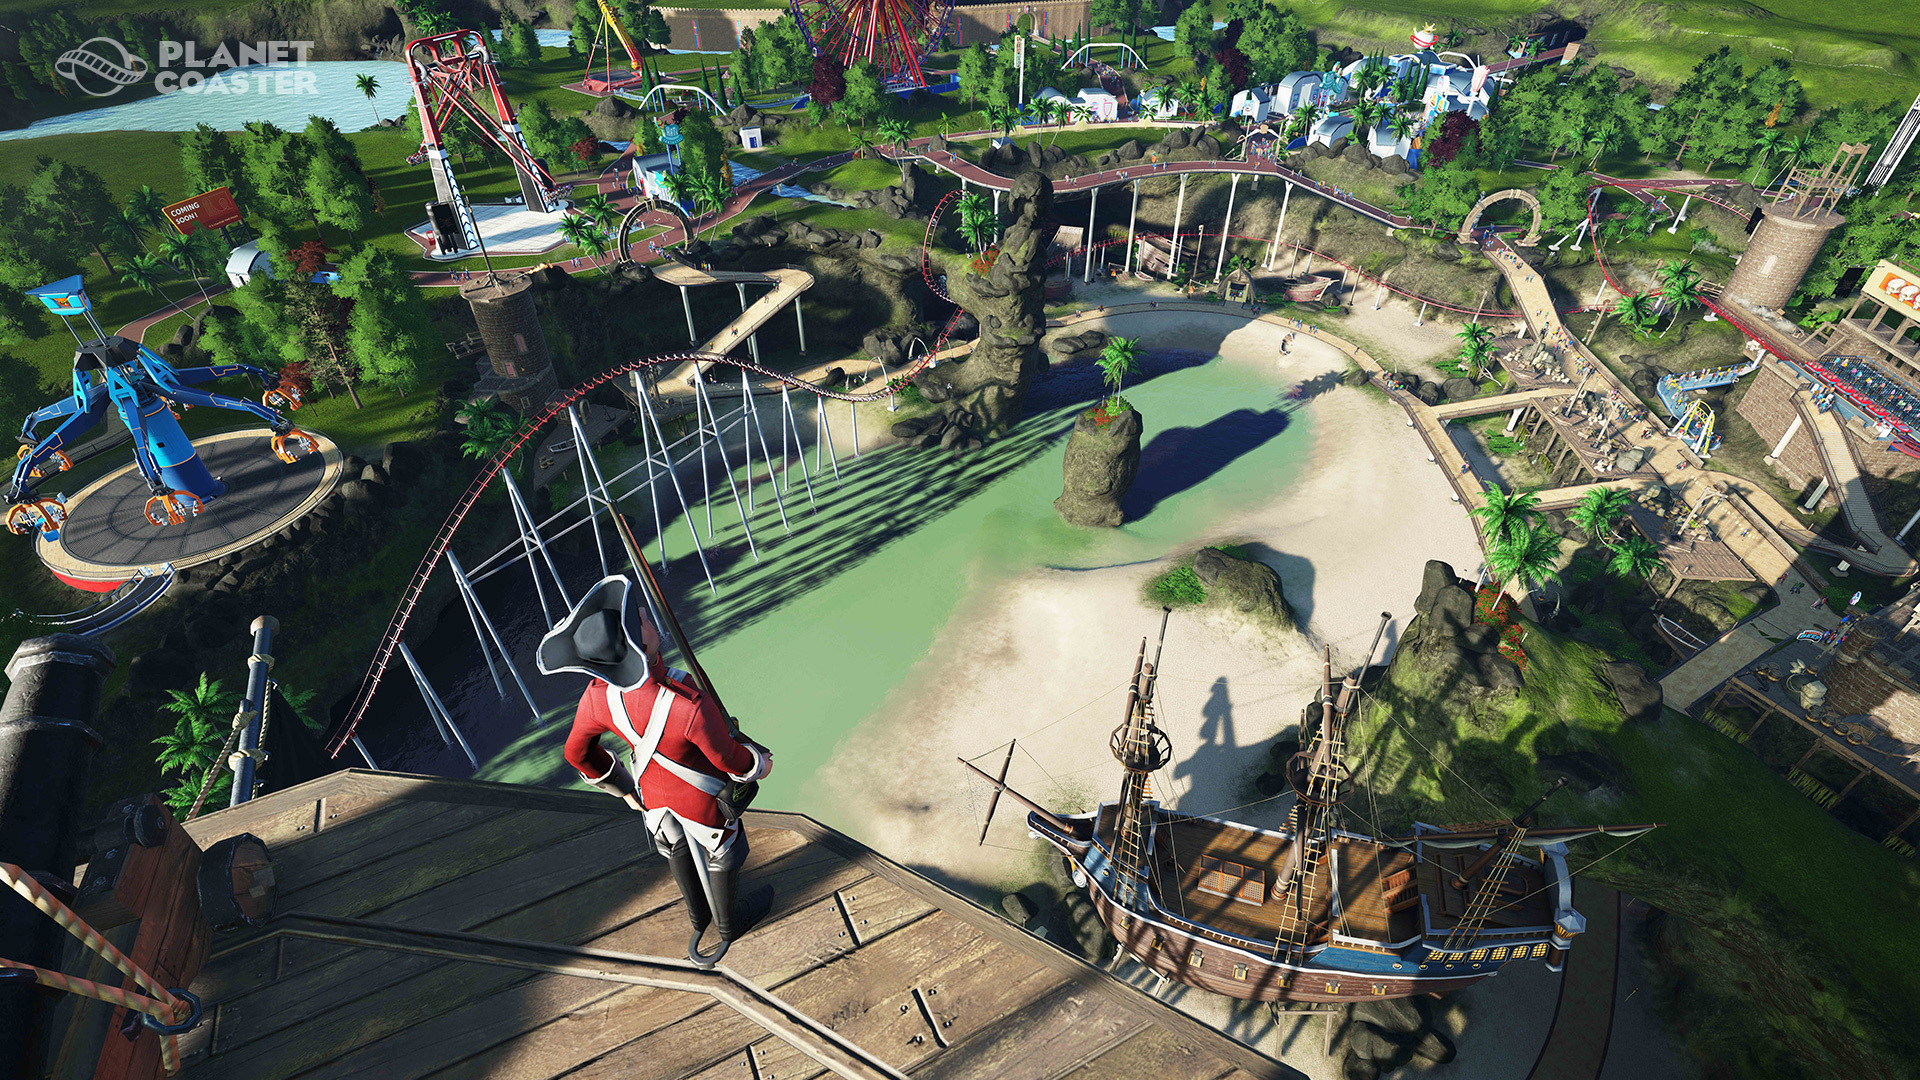 ss 0a71684951f4ac4f0809e7adfc8a824f046ce6d3.1920x1080 See RollerCoaster Tycoon Inspired Planet Coaster In Action